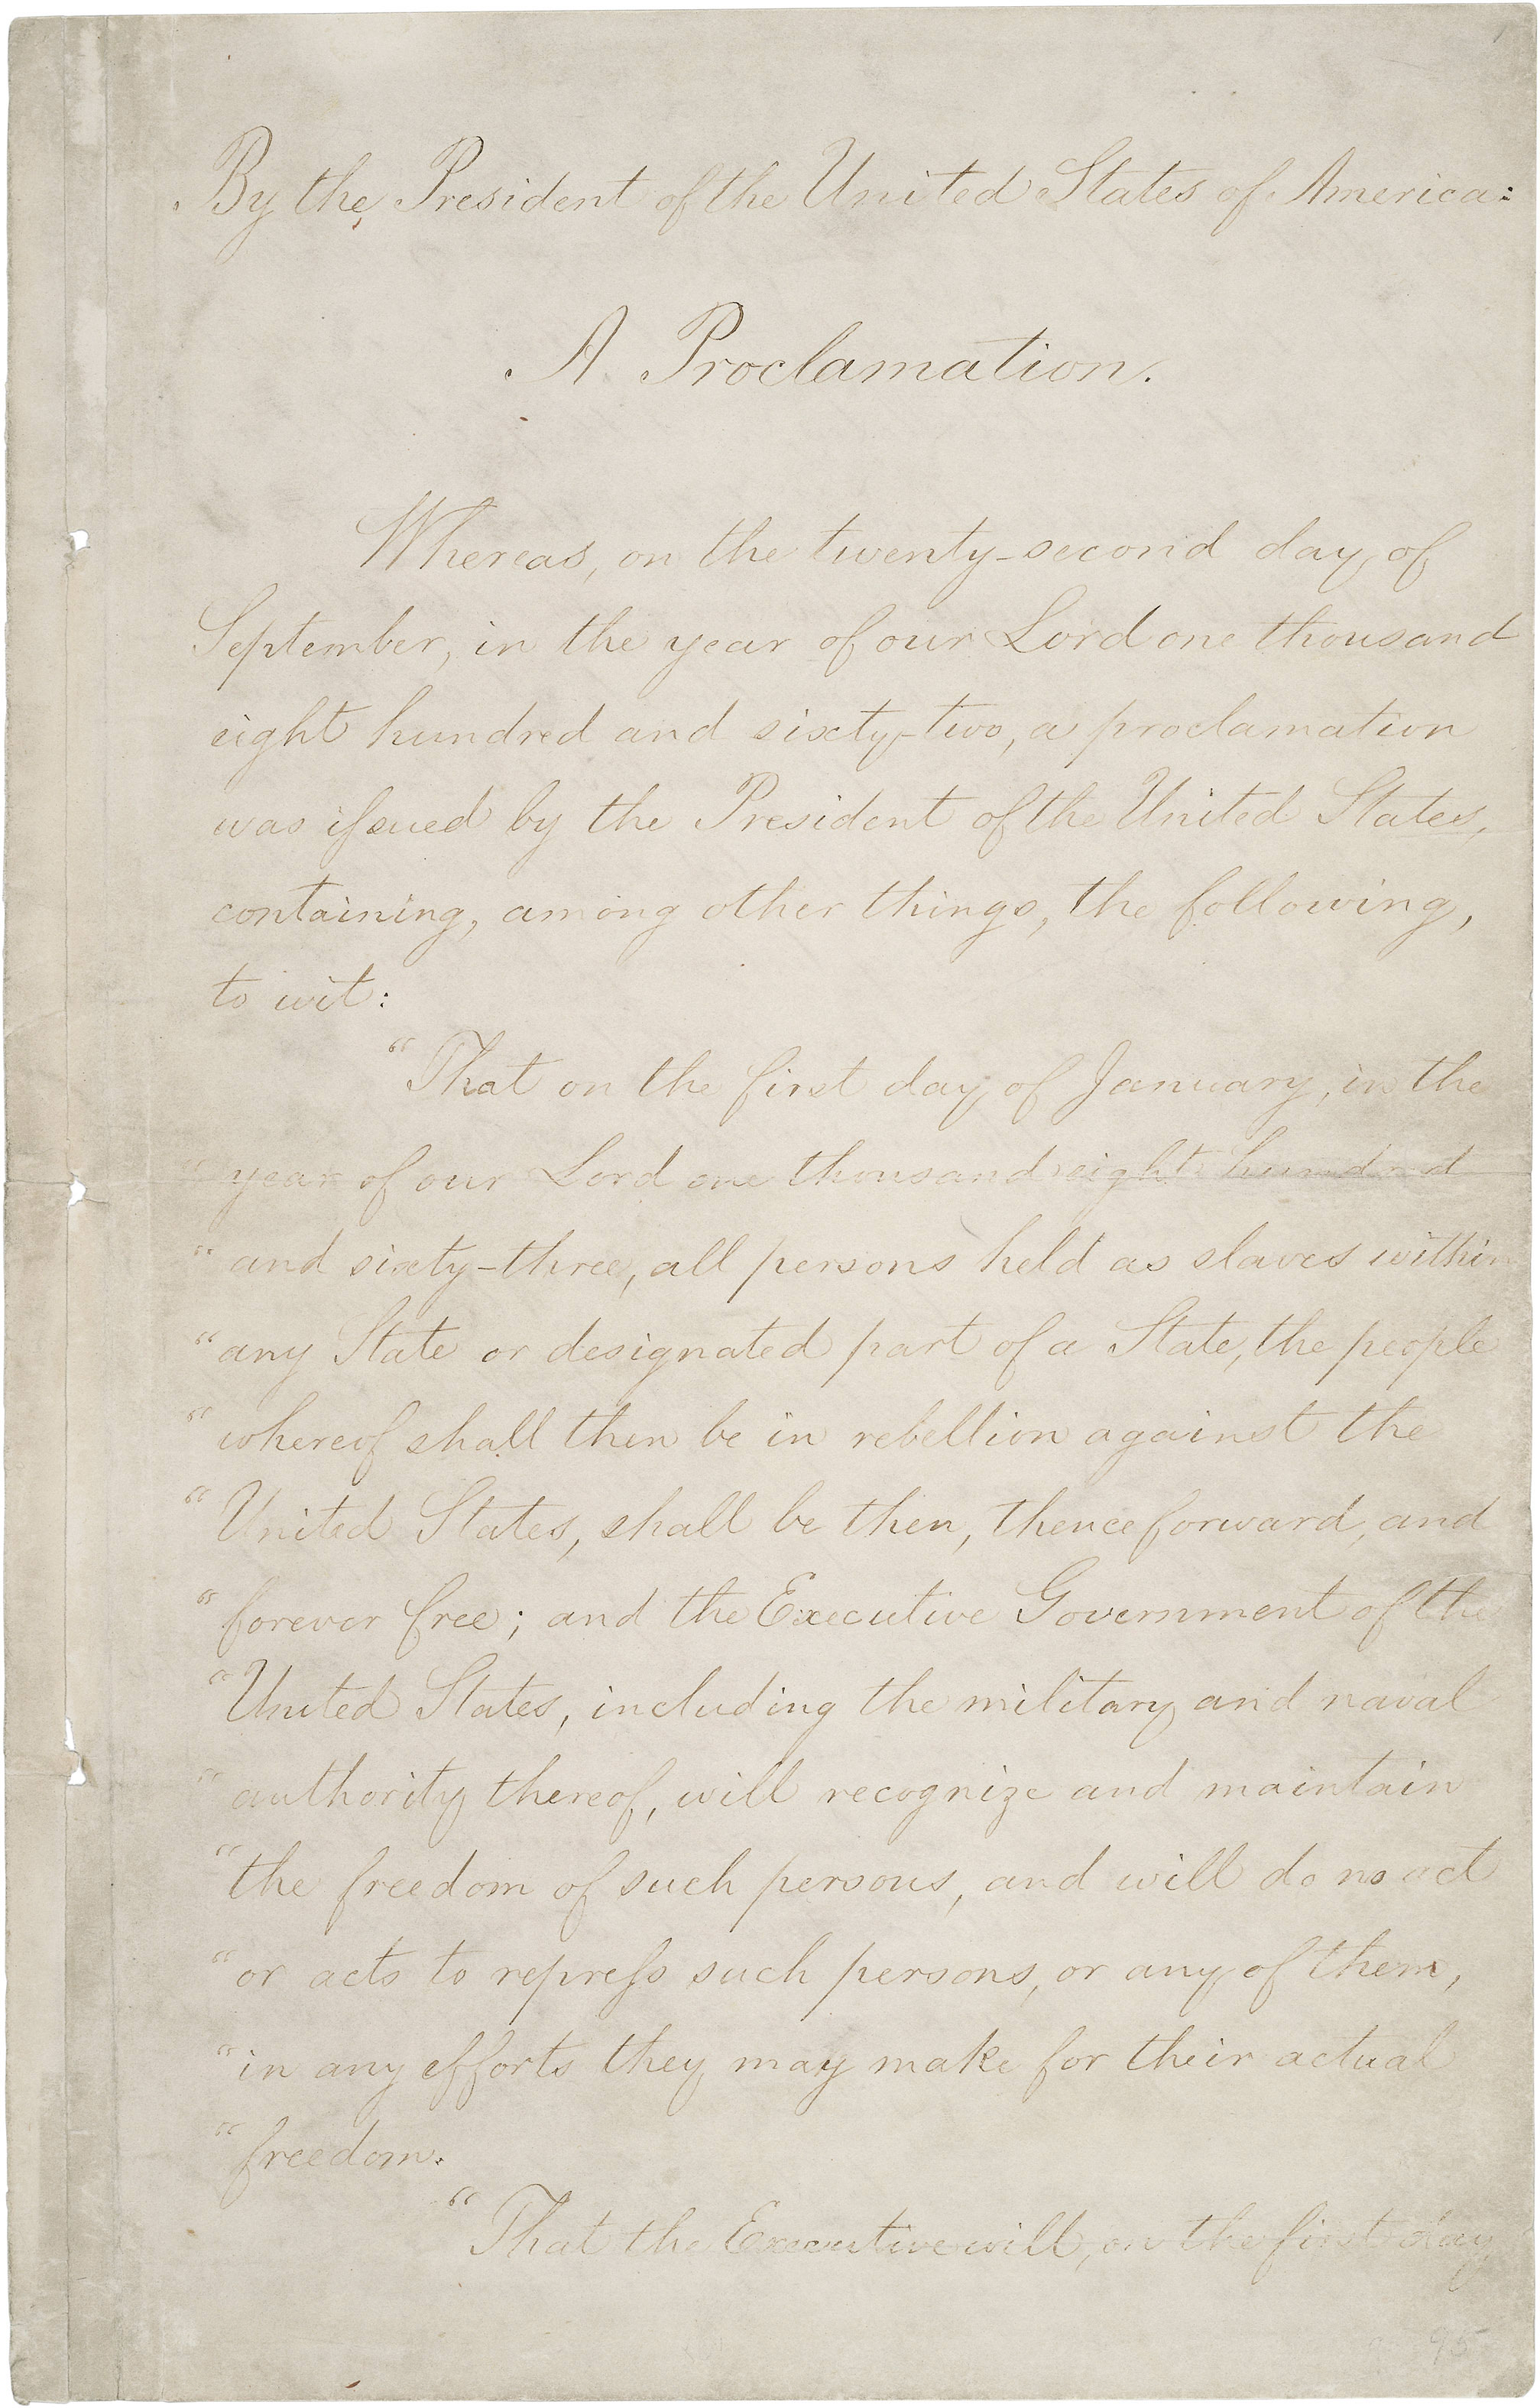 The first page of the Emancipation Proclamation. Handwritten document.